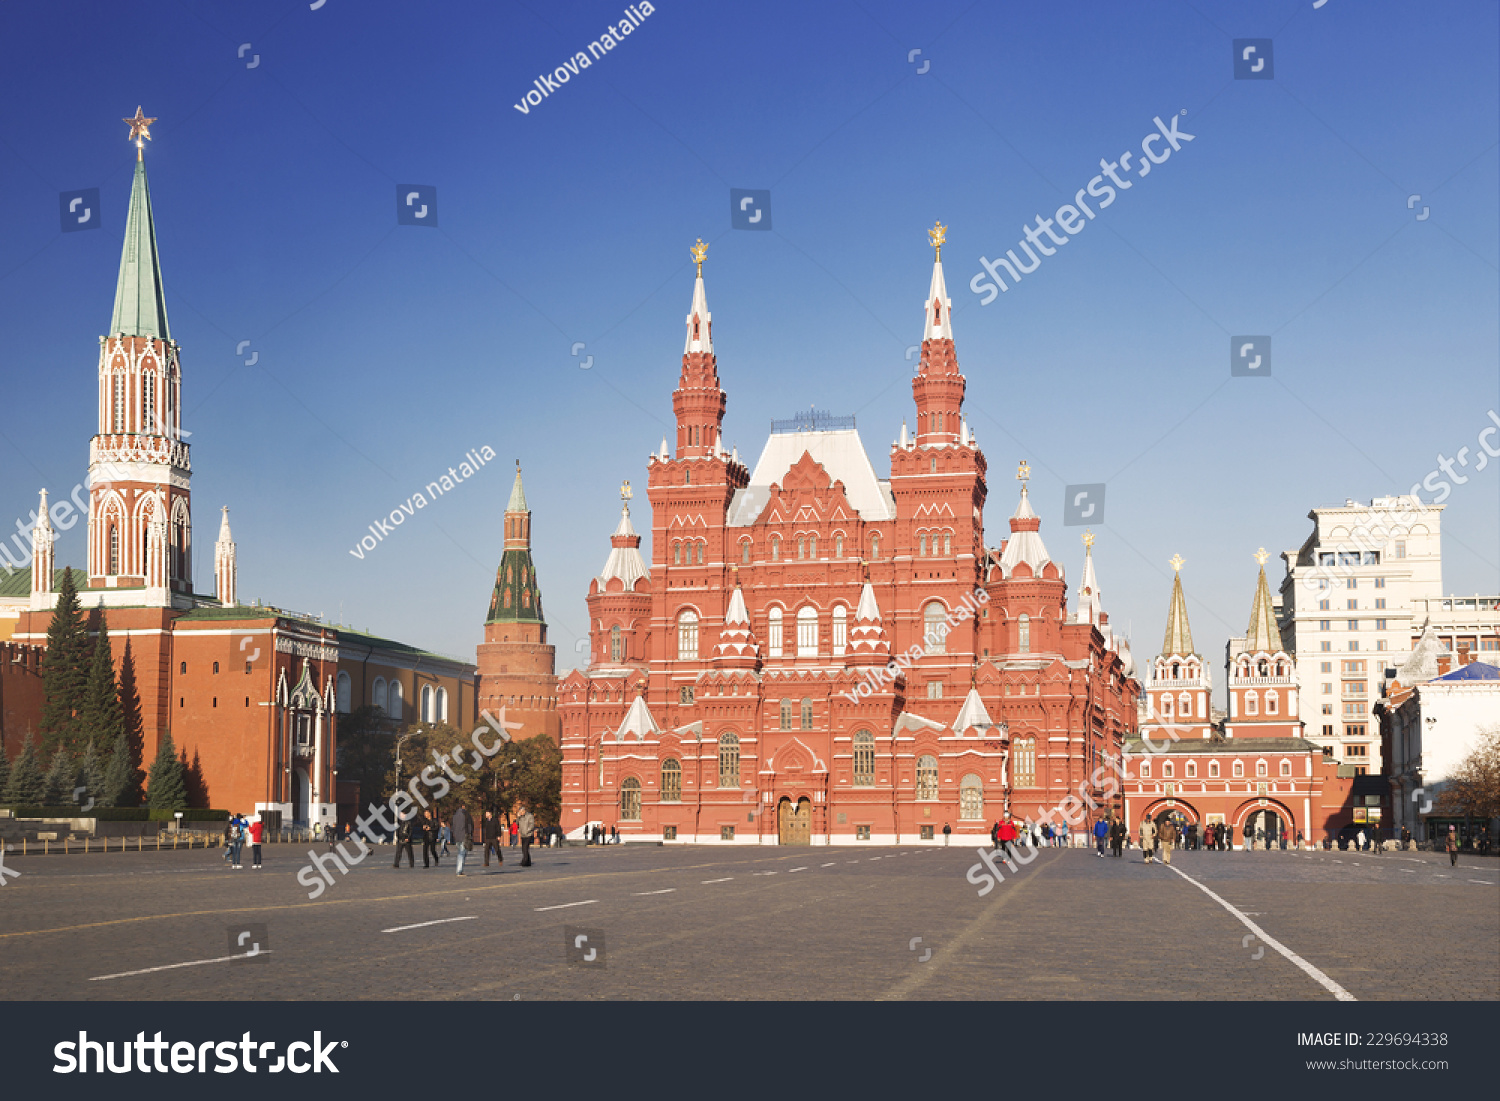 The Moscow Kremlin architectural ensemble: description, history and interesting facts 12